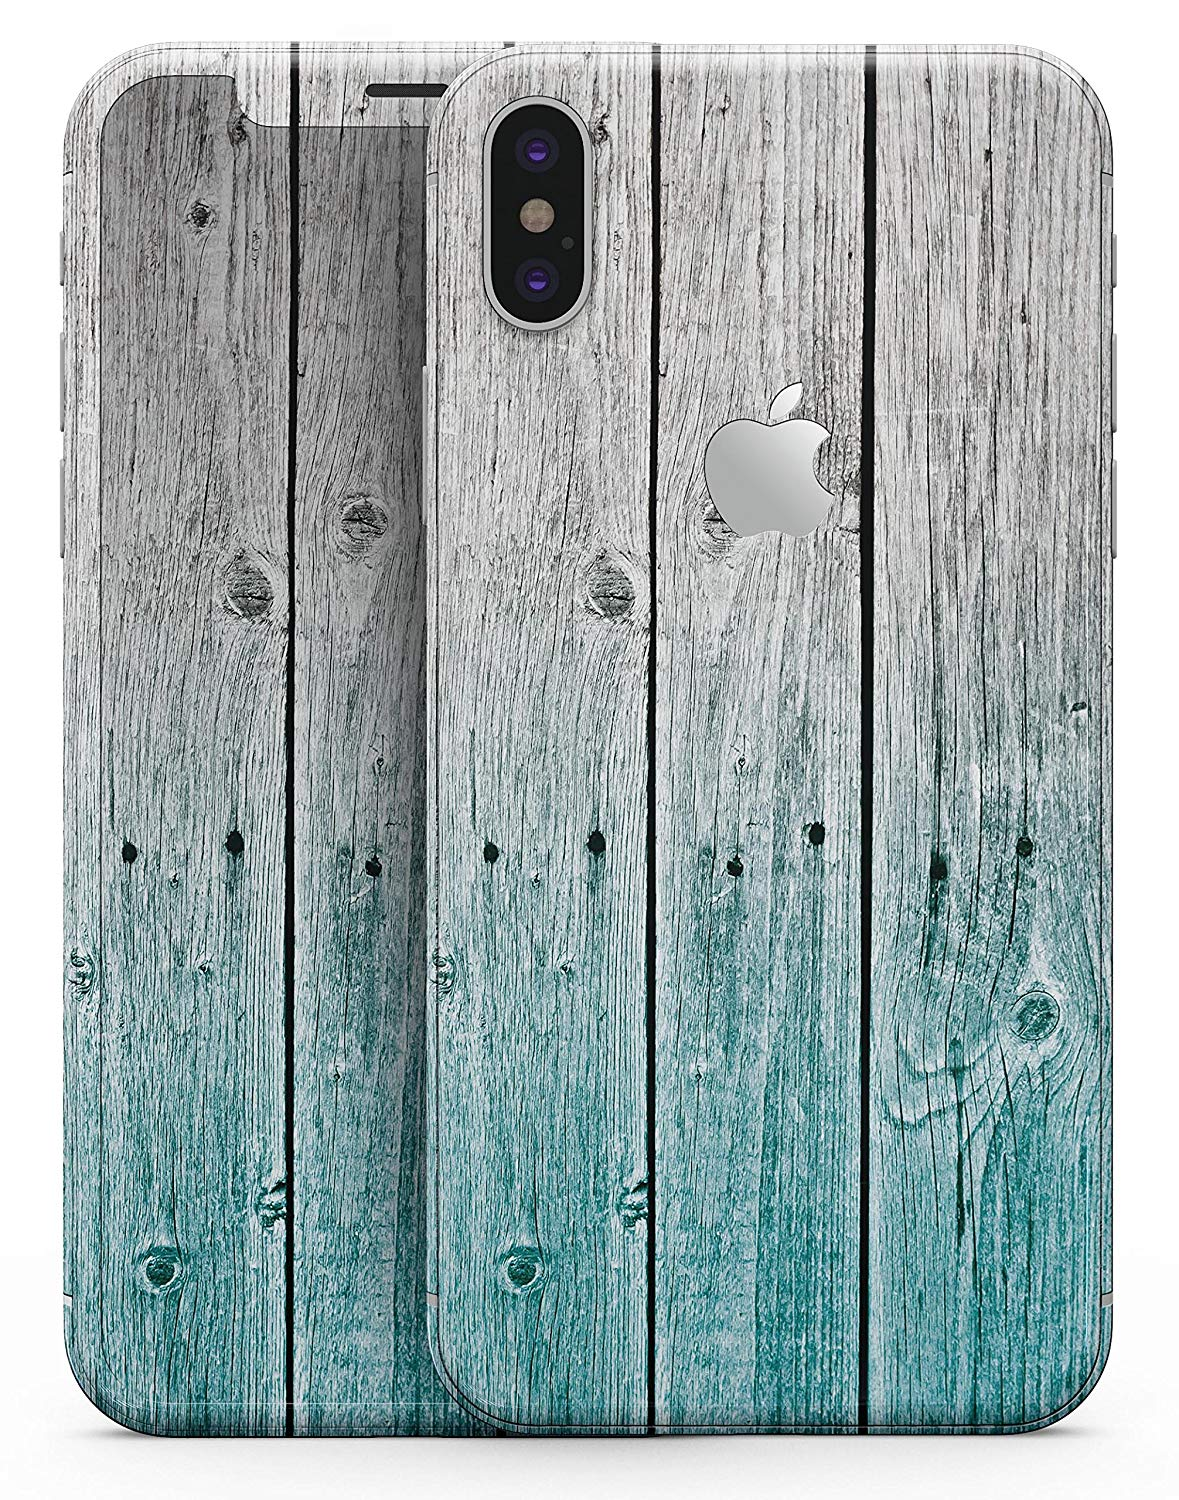 Wood Pattern Design Skinz Premium Full-Body Wrap Decal Skin-Kit for the iPhone 6 Plus - Trendy Teal to White Aged Wood Planks